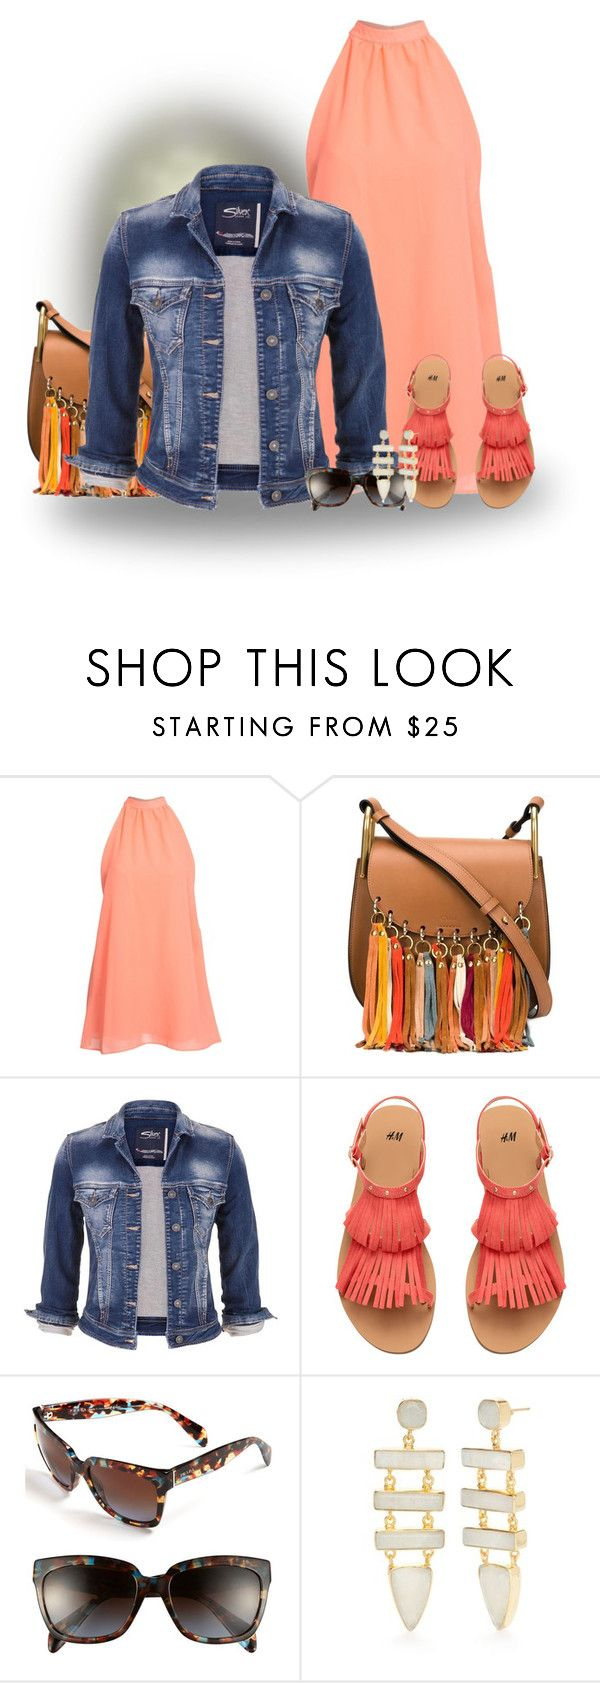 """denim"" by sharonbeach ❤ liked on Polyvore featuring Chloé, maurices, Prada, Reece Blaire and denim"